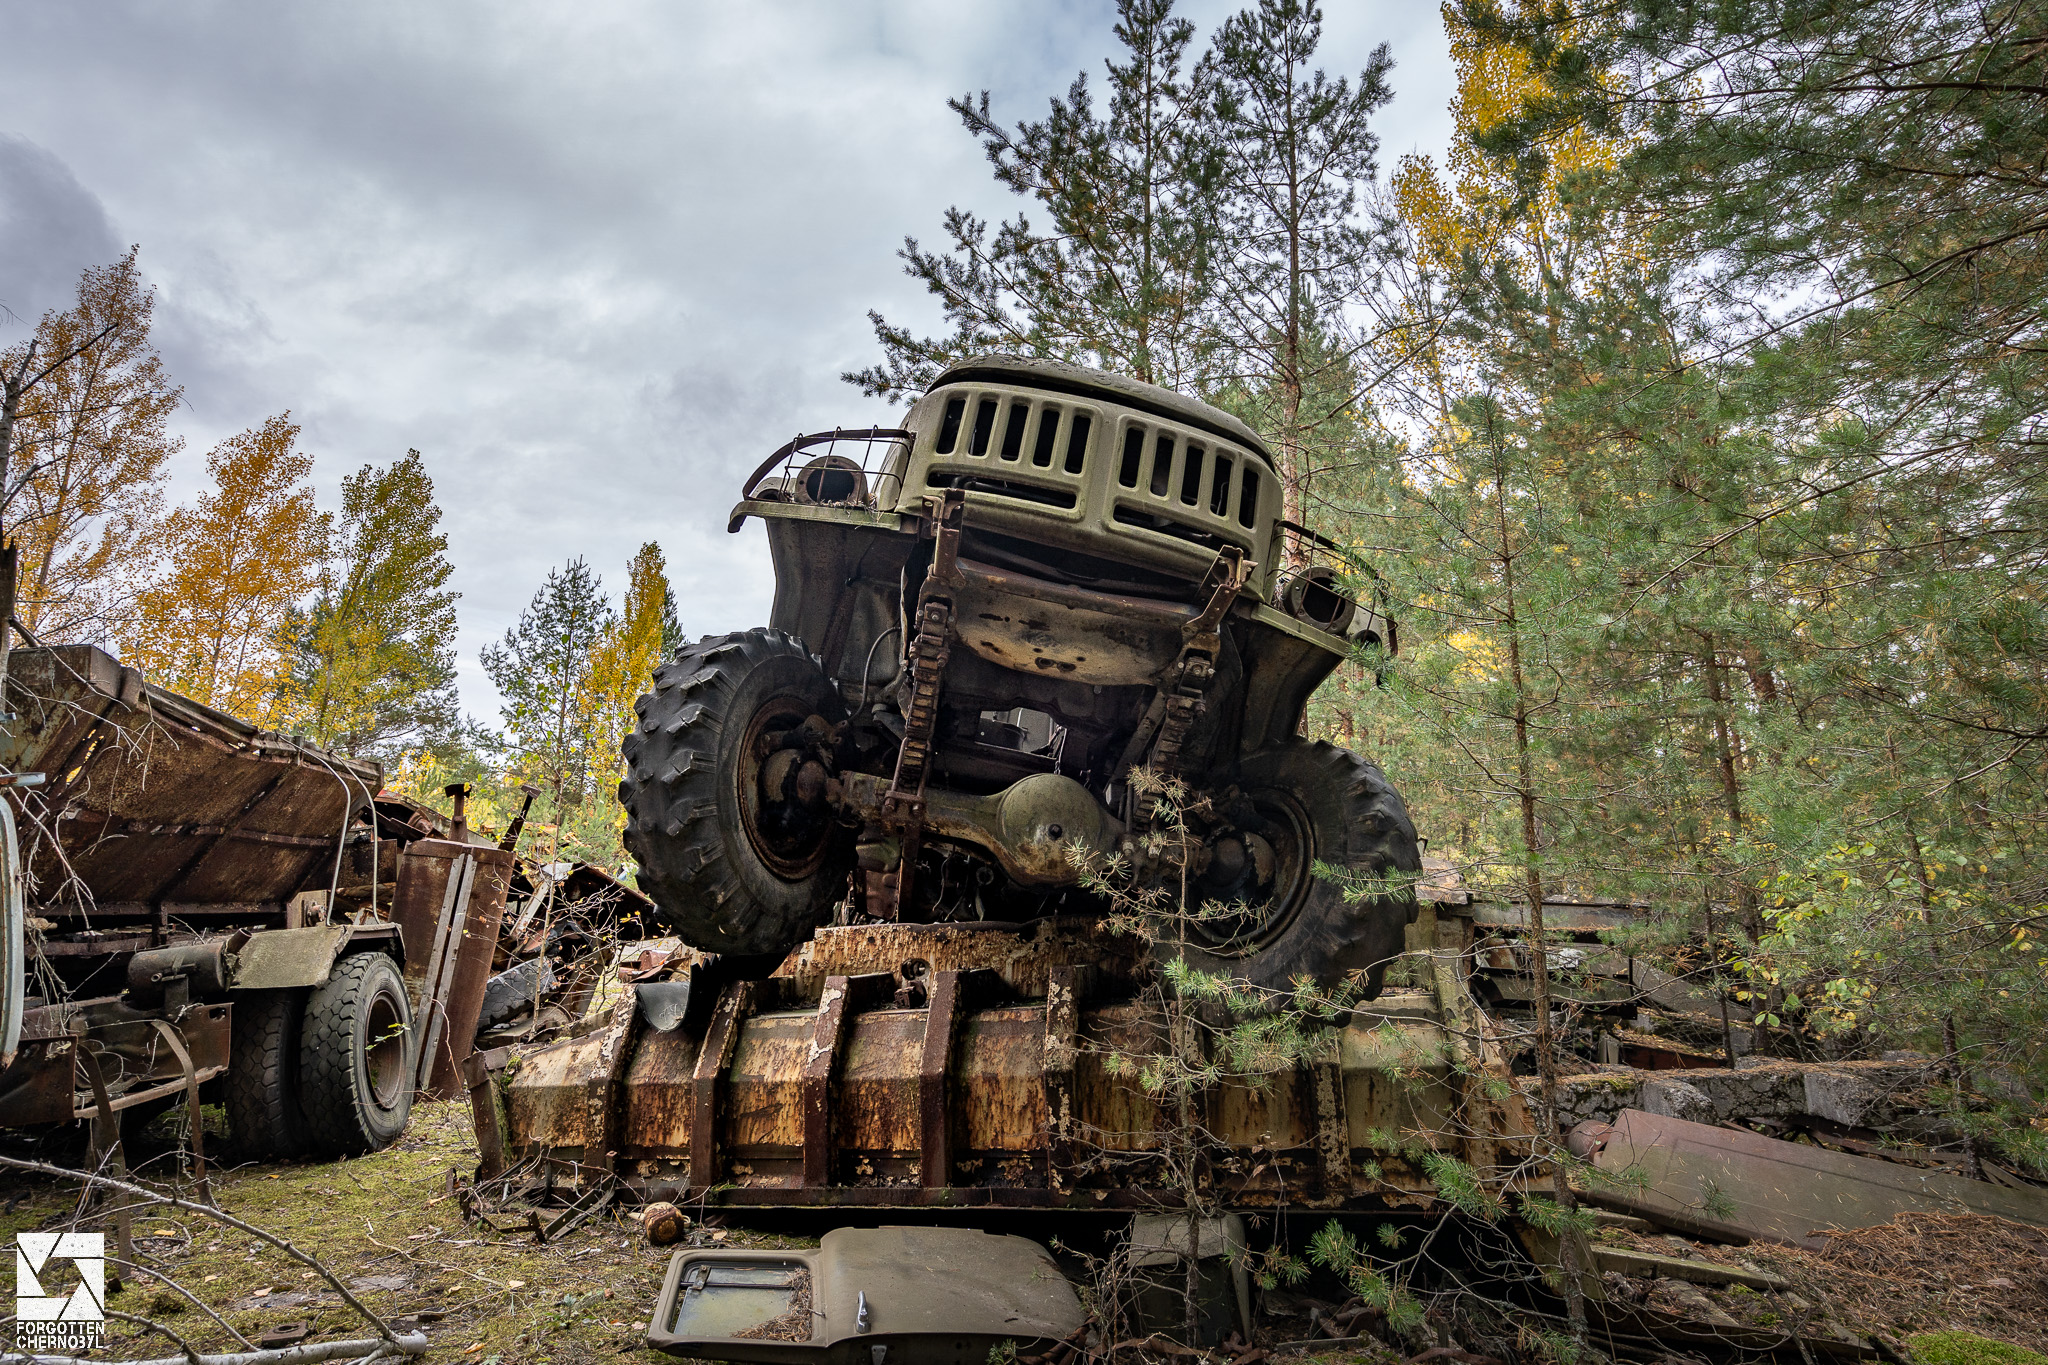 ZIL-131 truck at the ATH 2 garage and repair facility near Pripyat